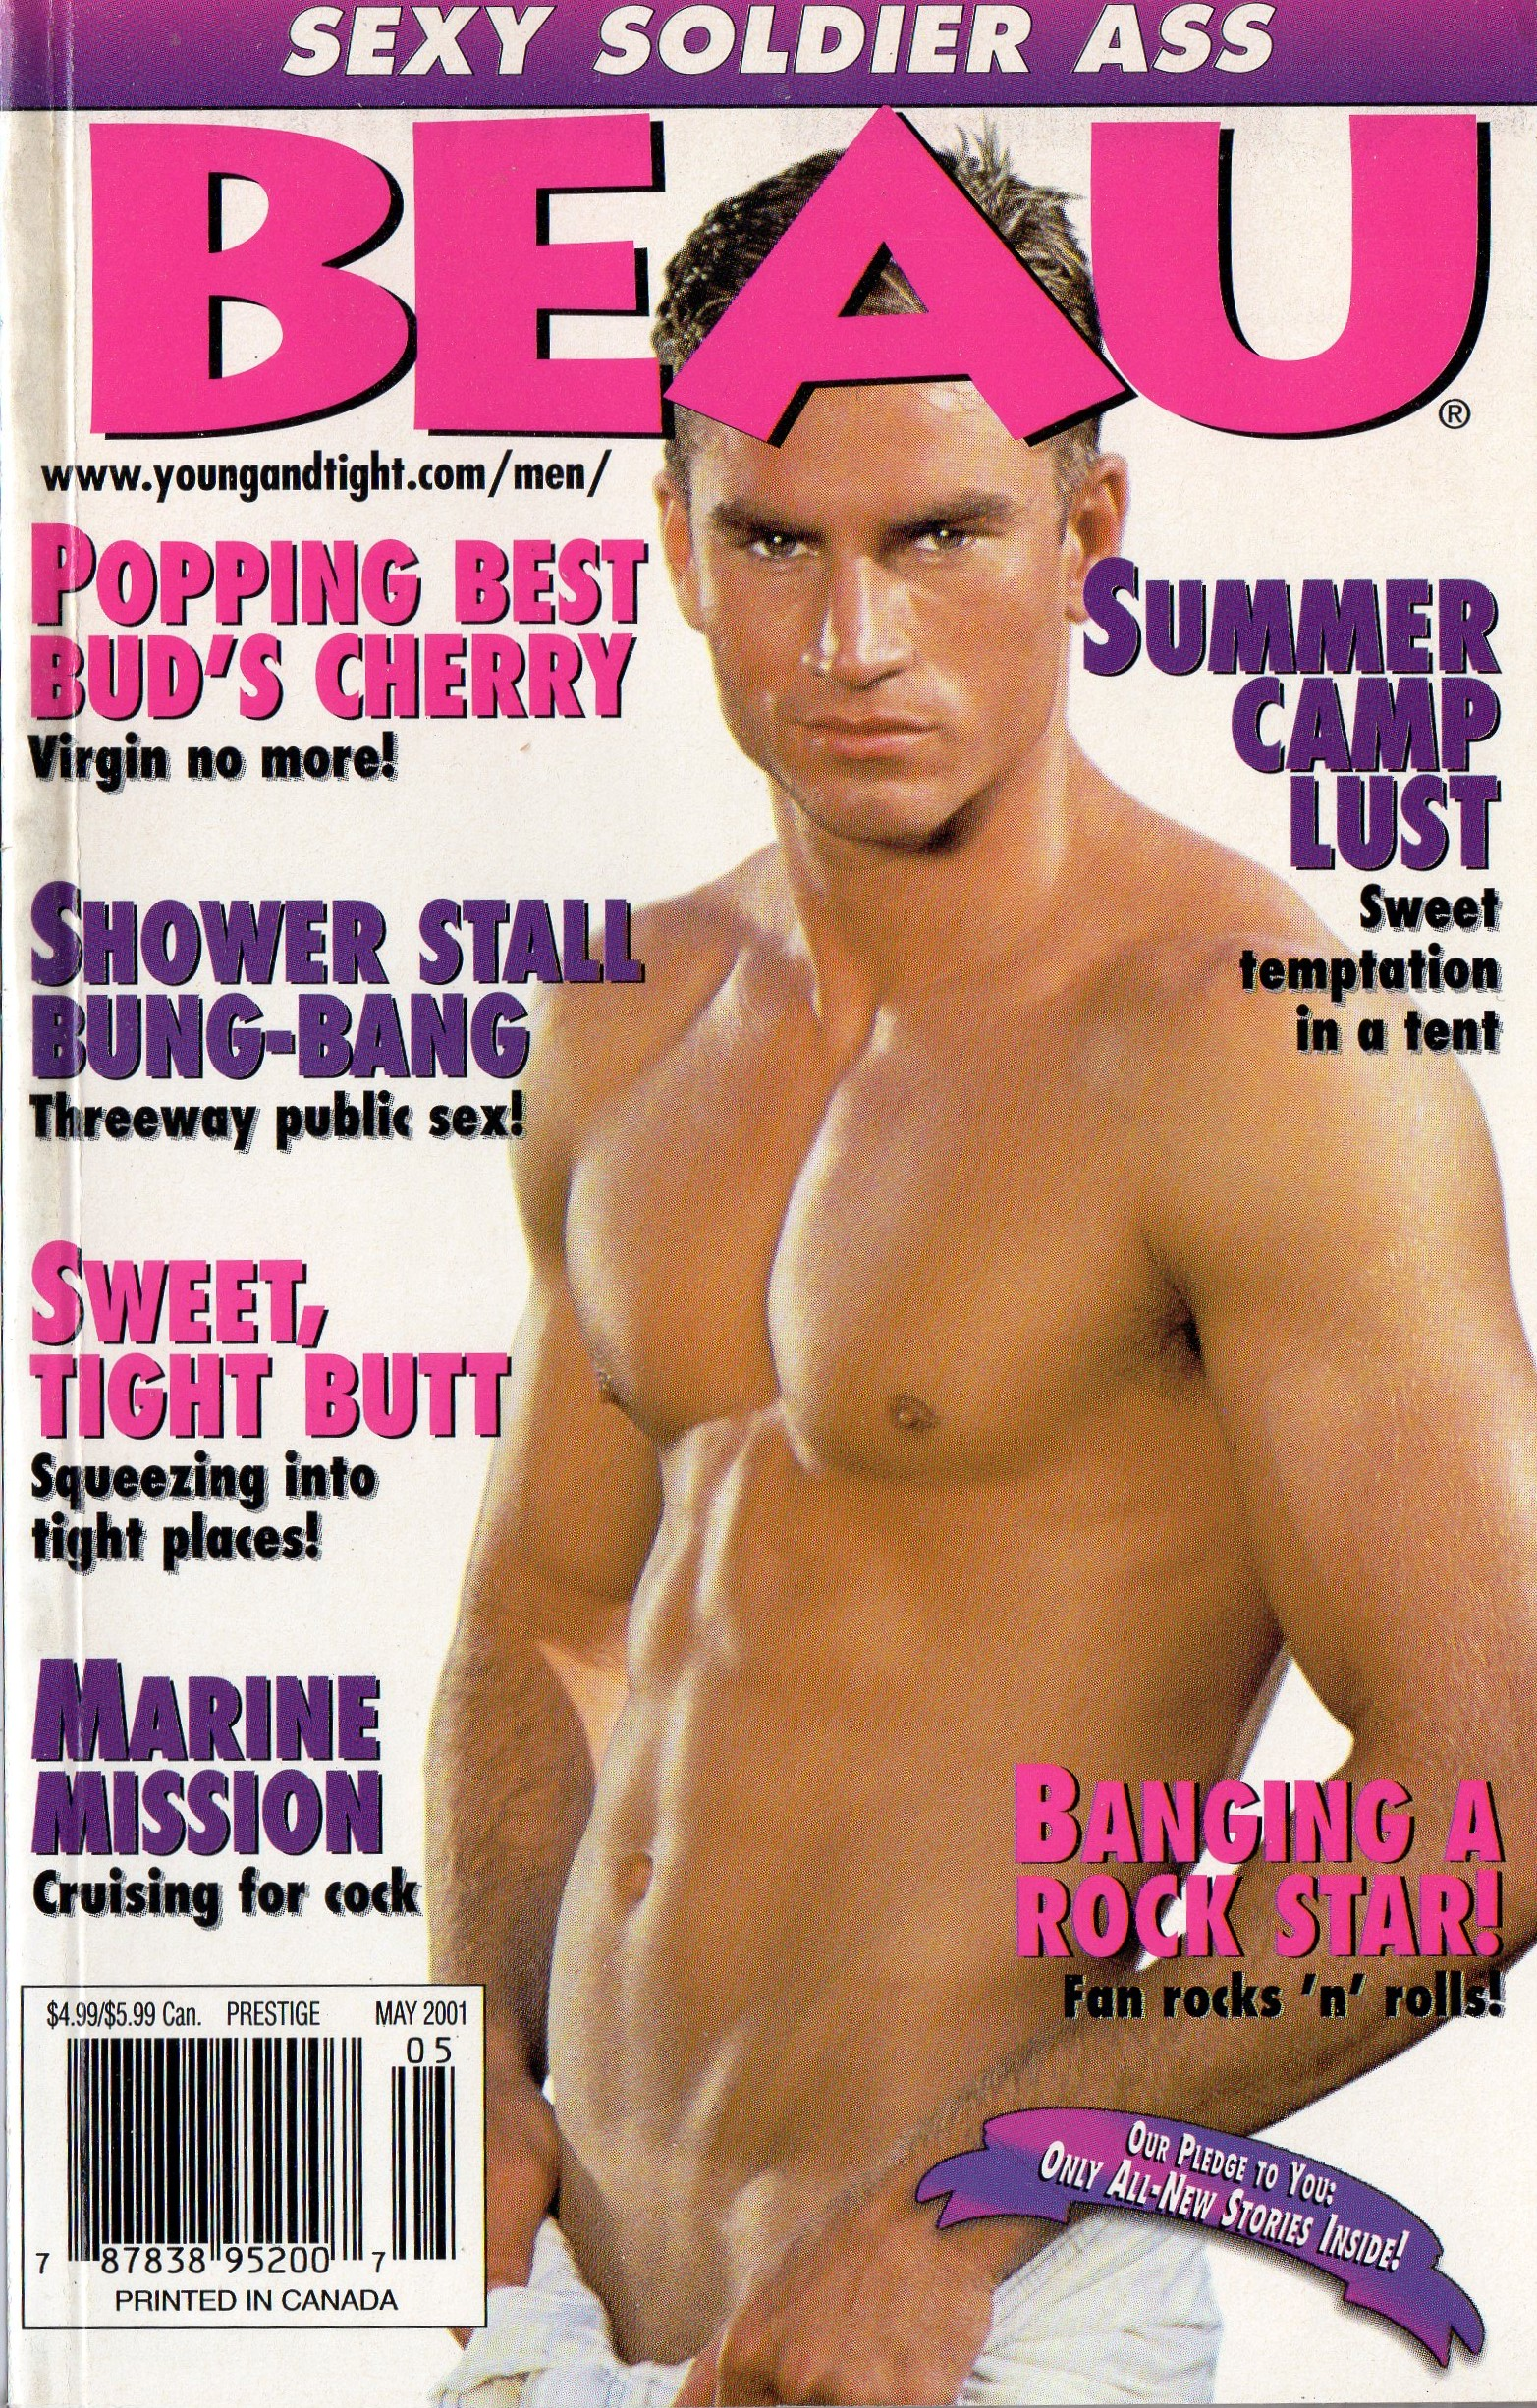 BEAU (Release May 2001) Gay Erotic Stories Paperback